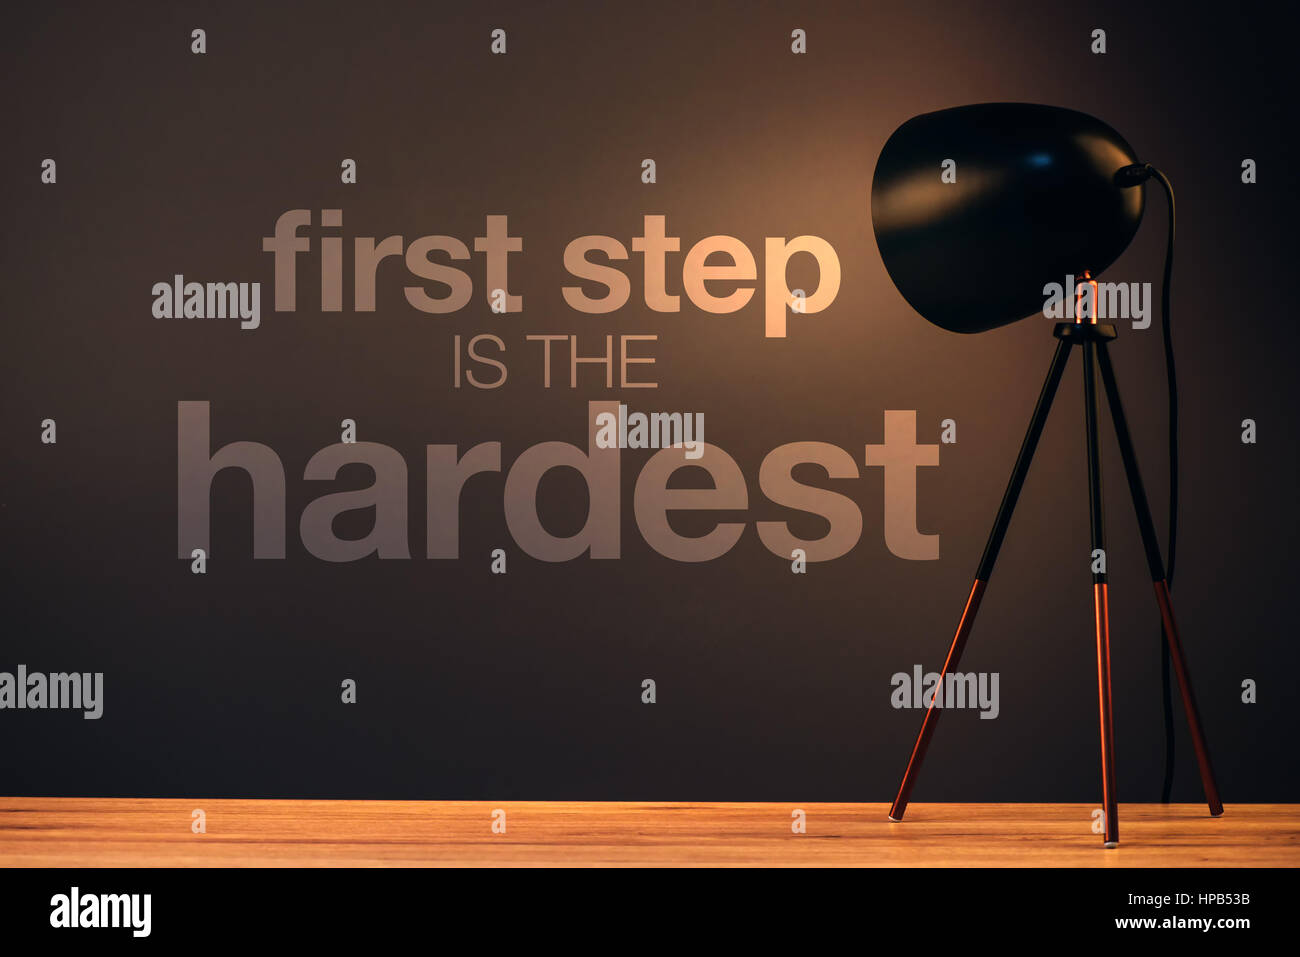 First step is the hardest, motivational message on office wall illuminated by the desk lamp - Stock Image